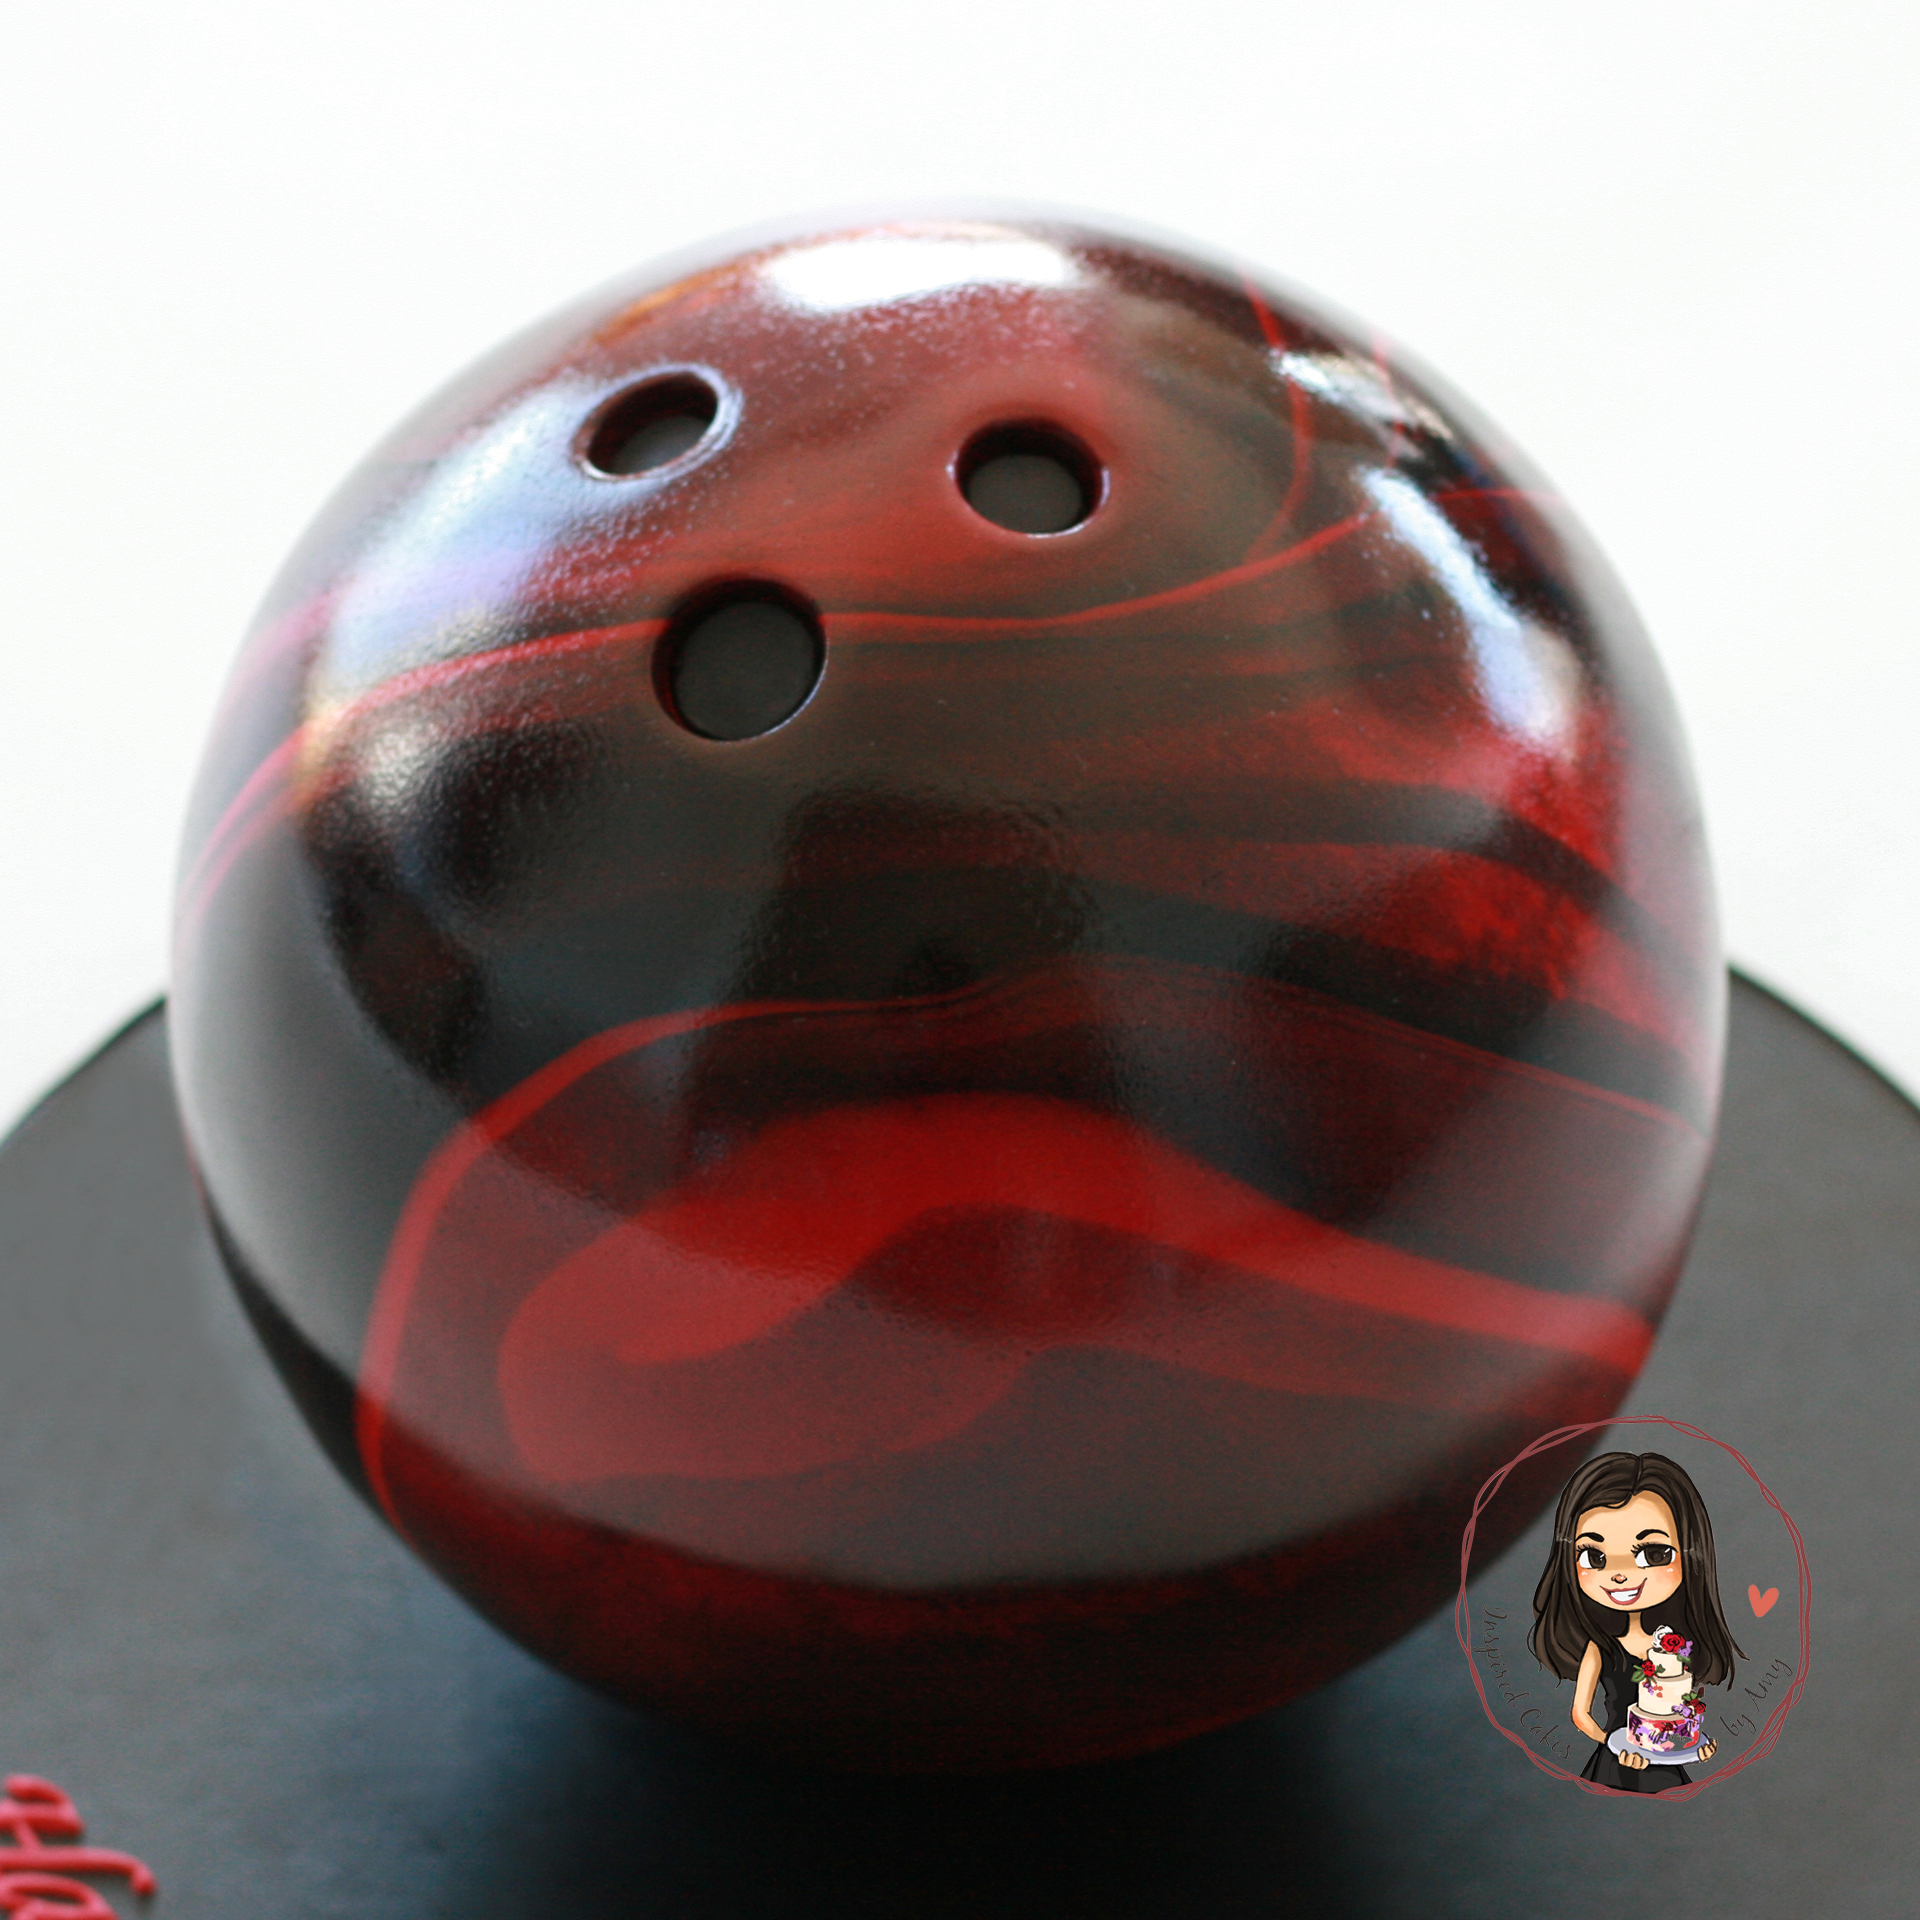 3D gravity defying bowling ball